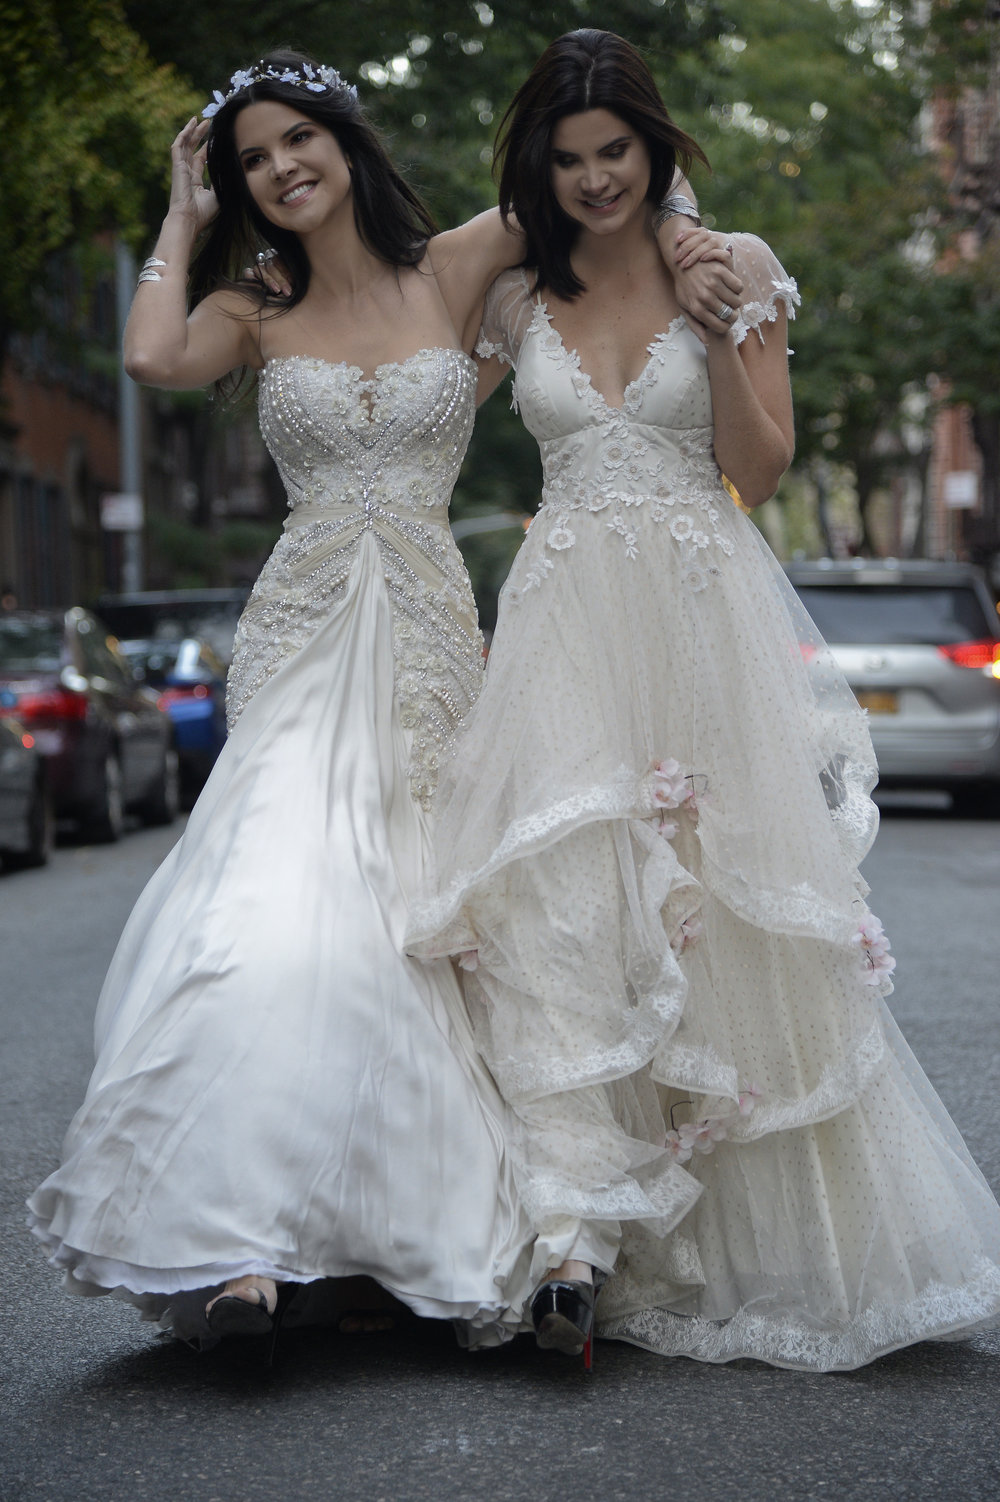 Bridal in NYC